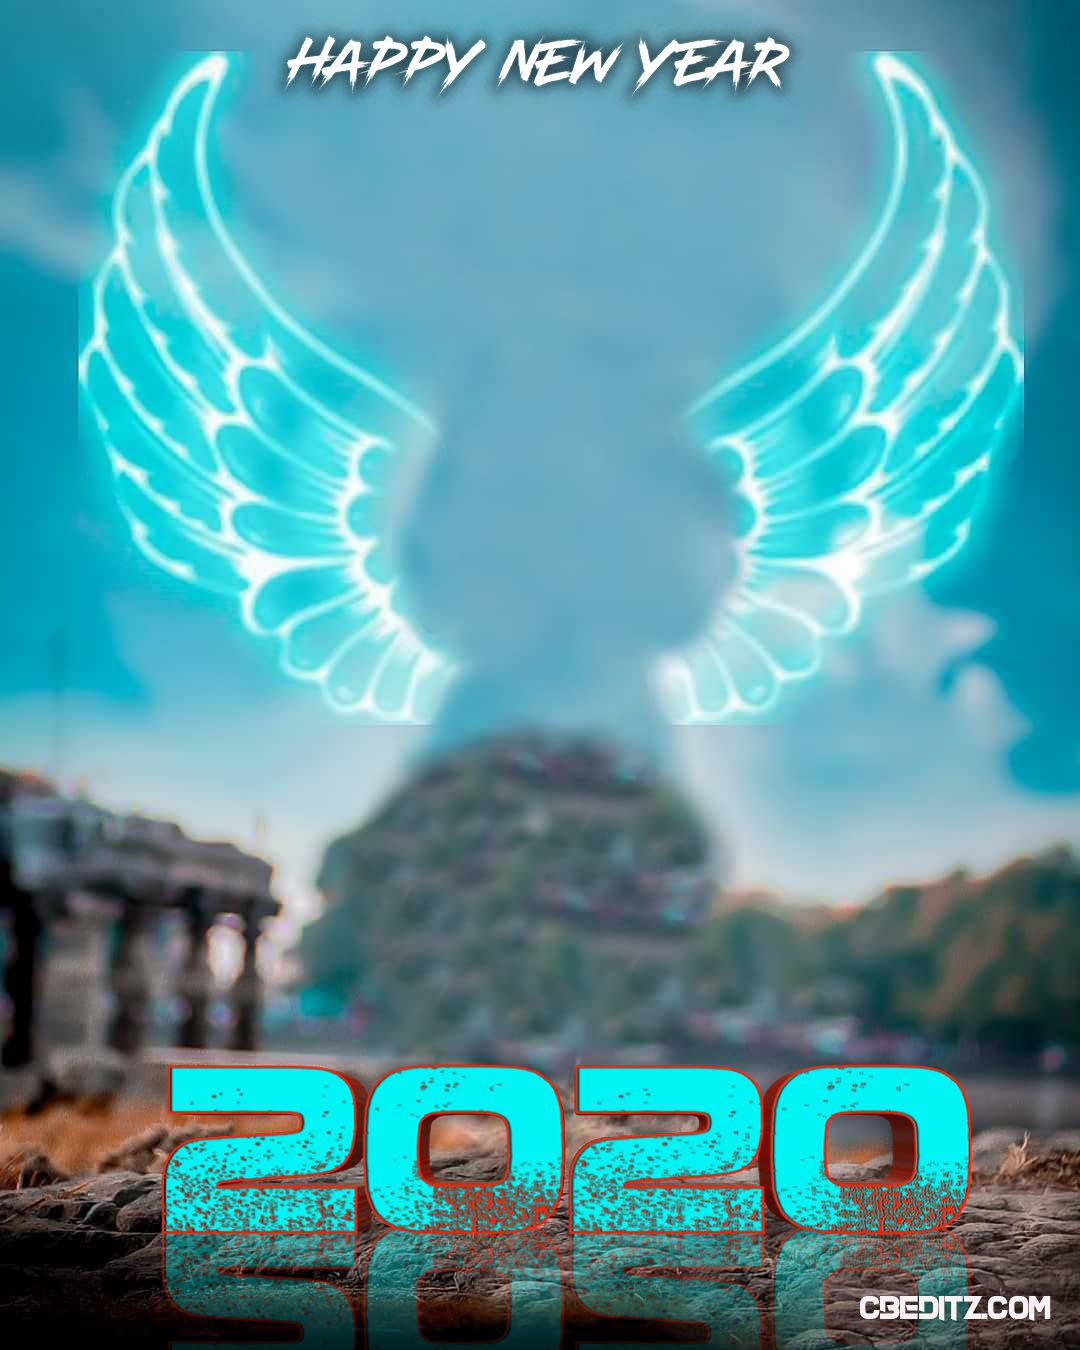 Top New Year 2020 Editing Background 2020 In 2020 New Background Images Photoshop Digital Background Blue Background Images